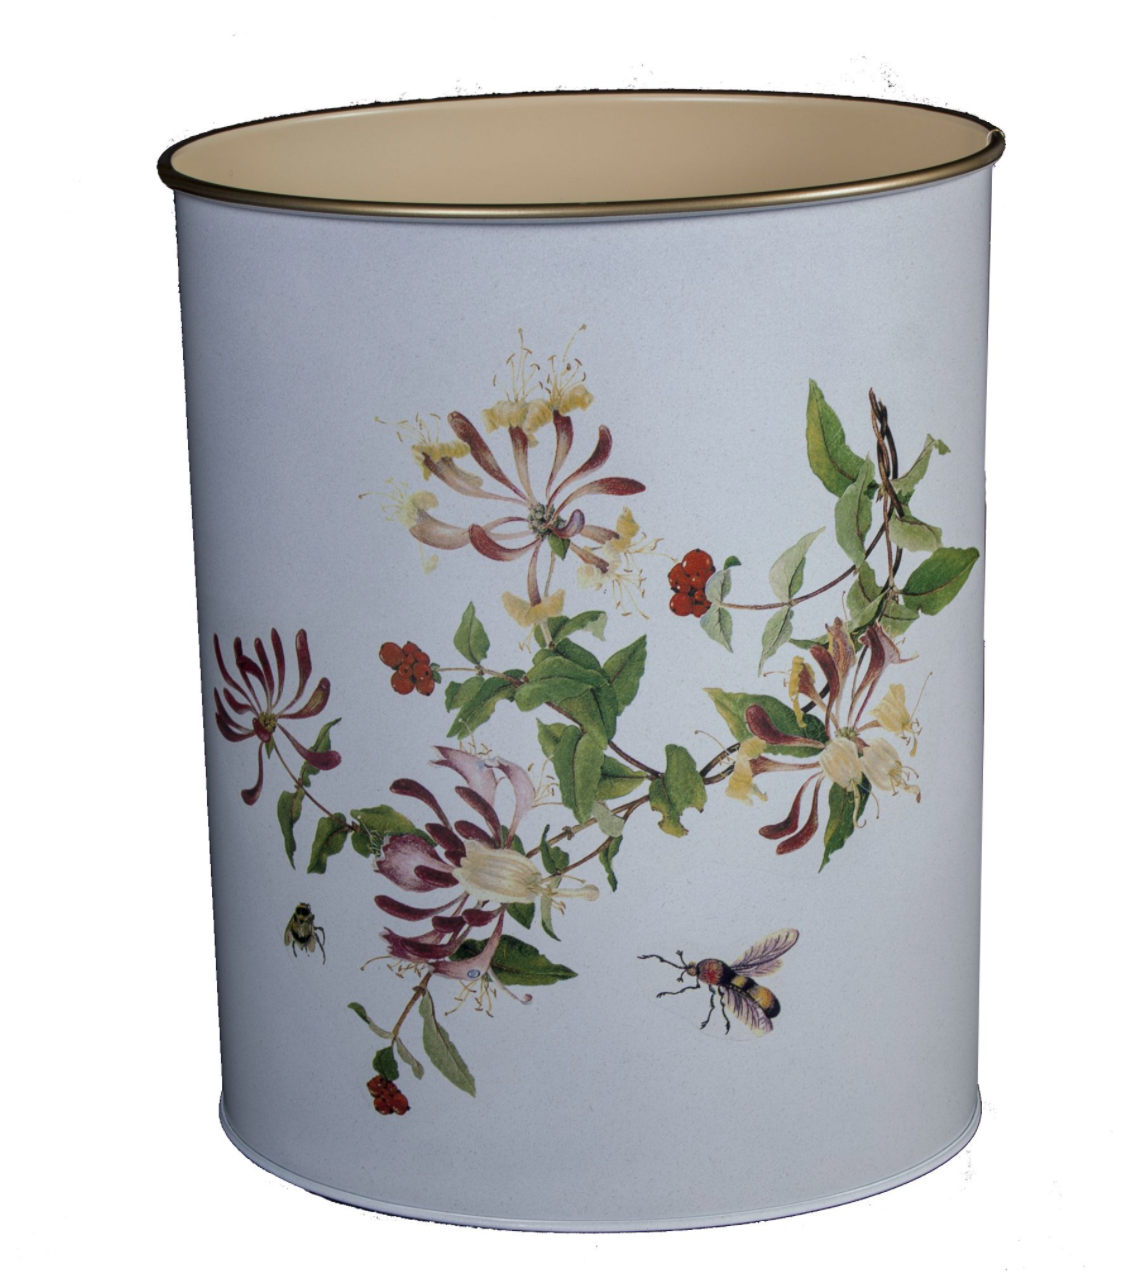 Oval Waste Paper Bin: Honeysuckle